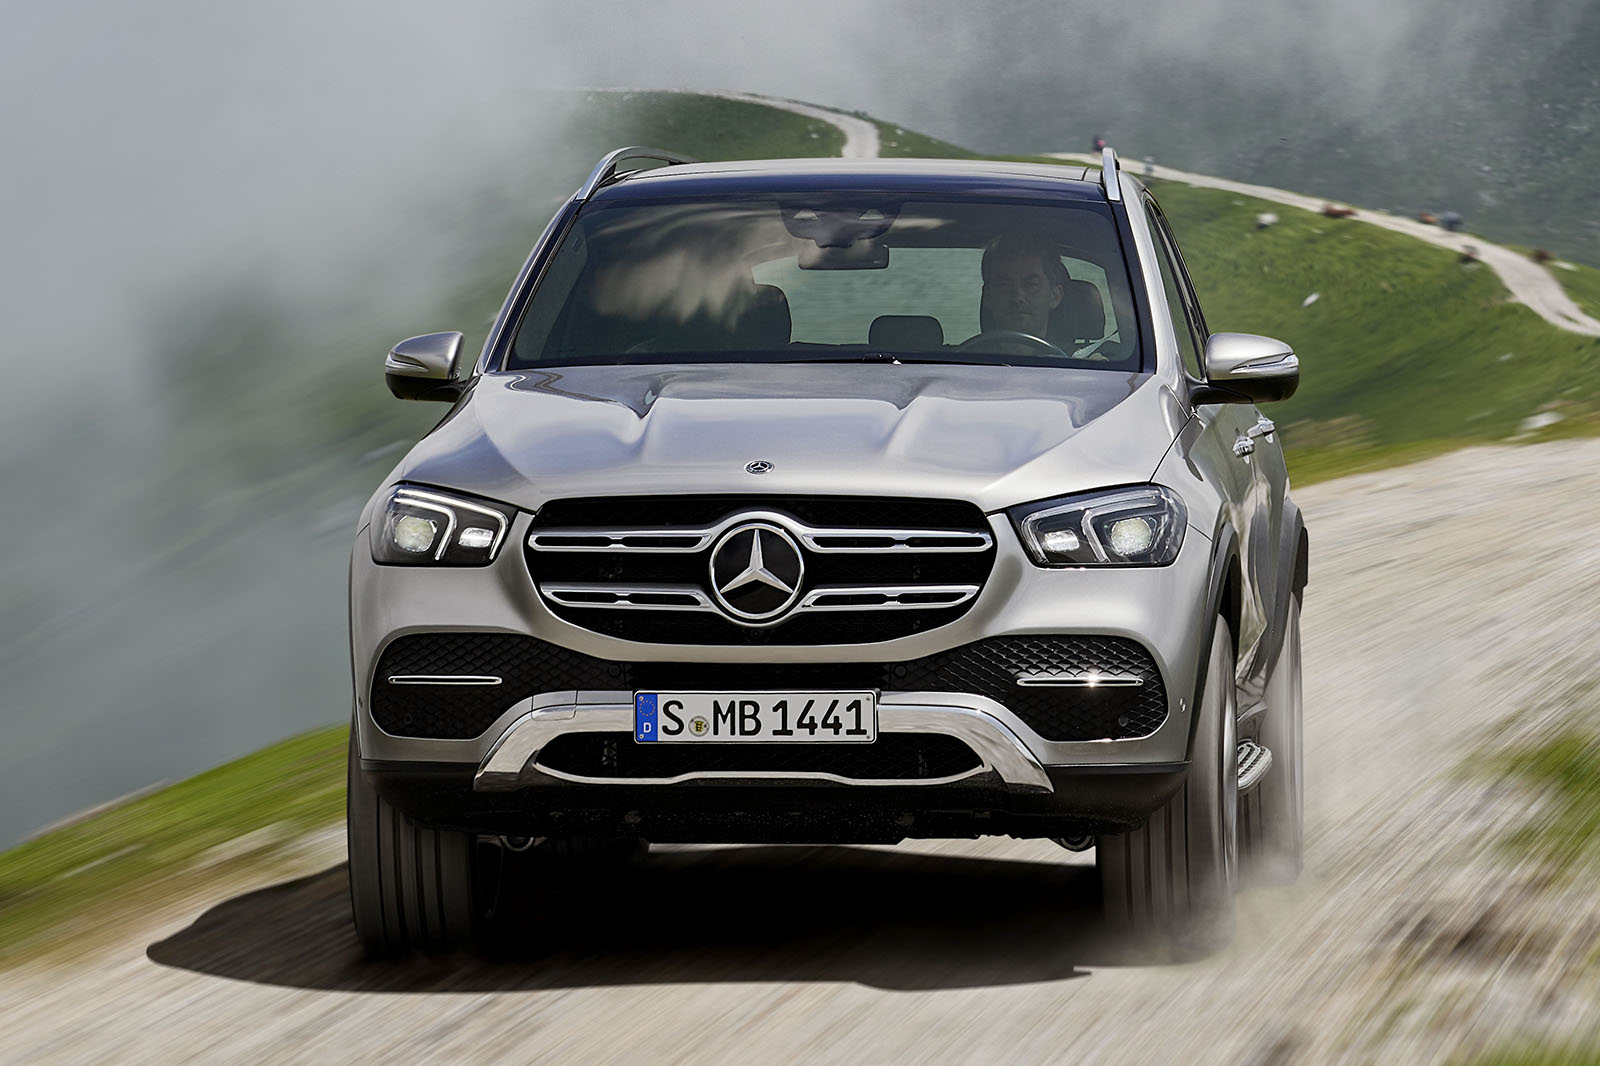 new mercedes gle: 2019 suv on sale now from £55,685 | autocar